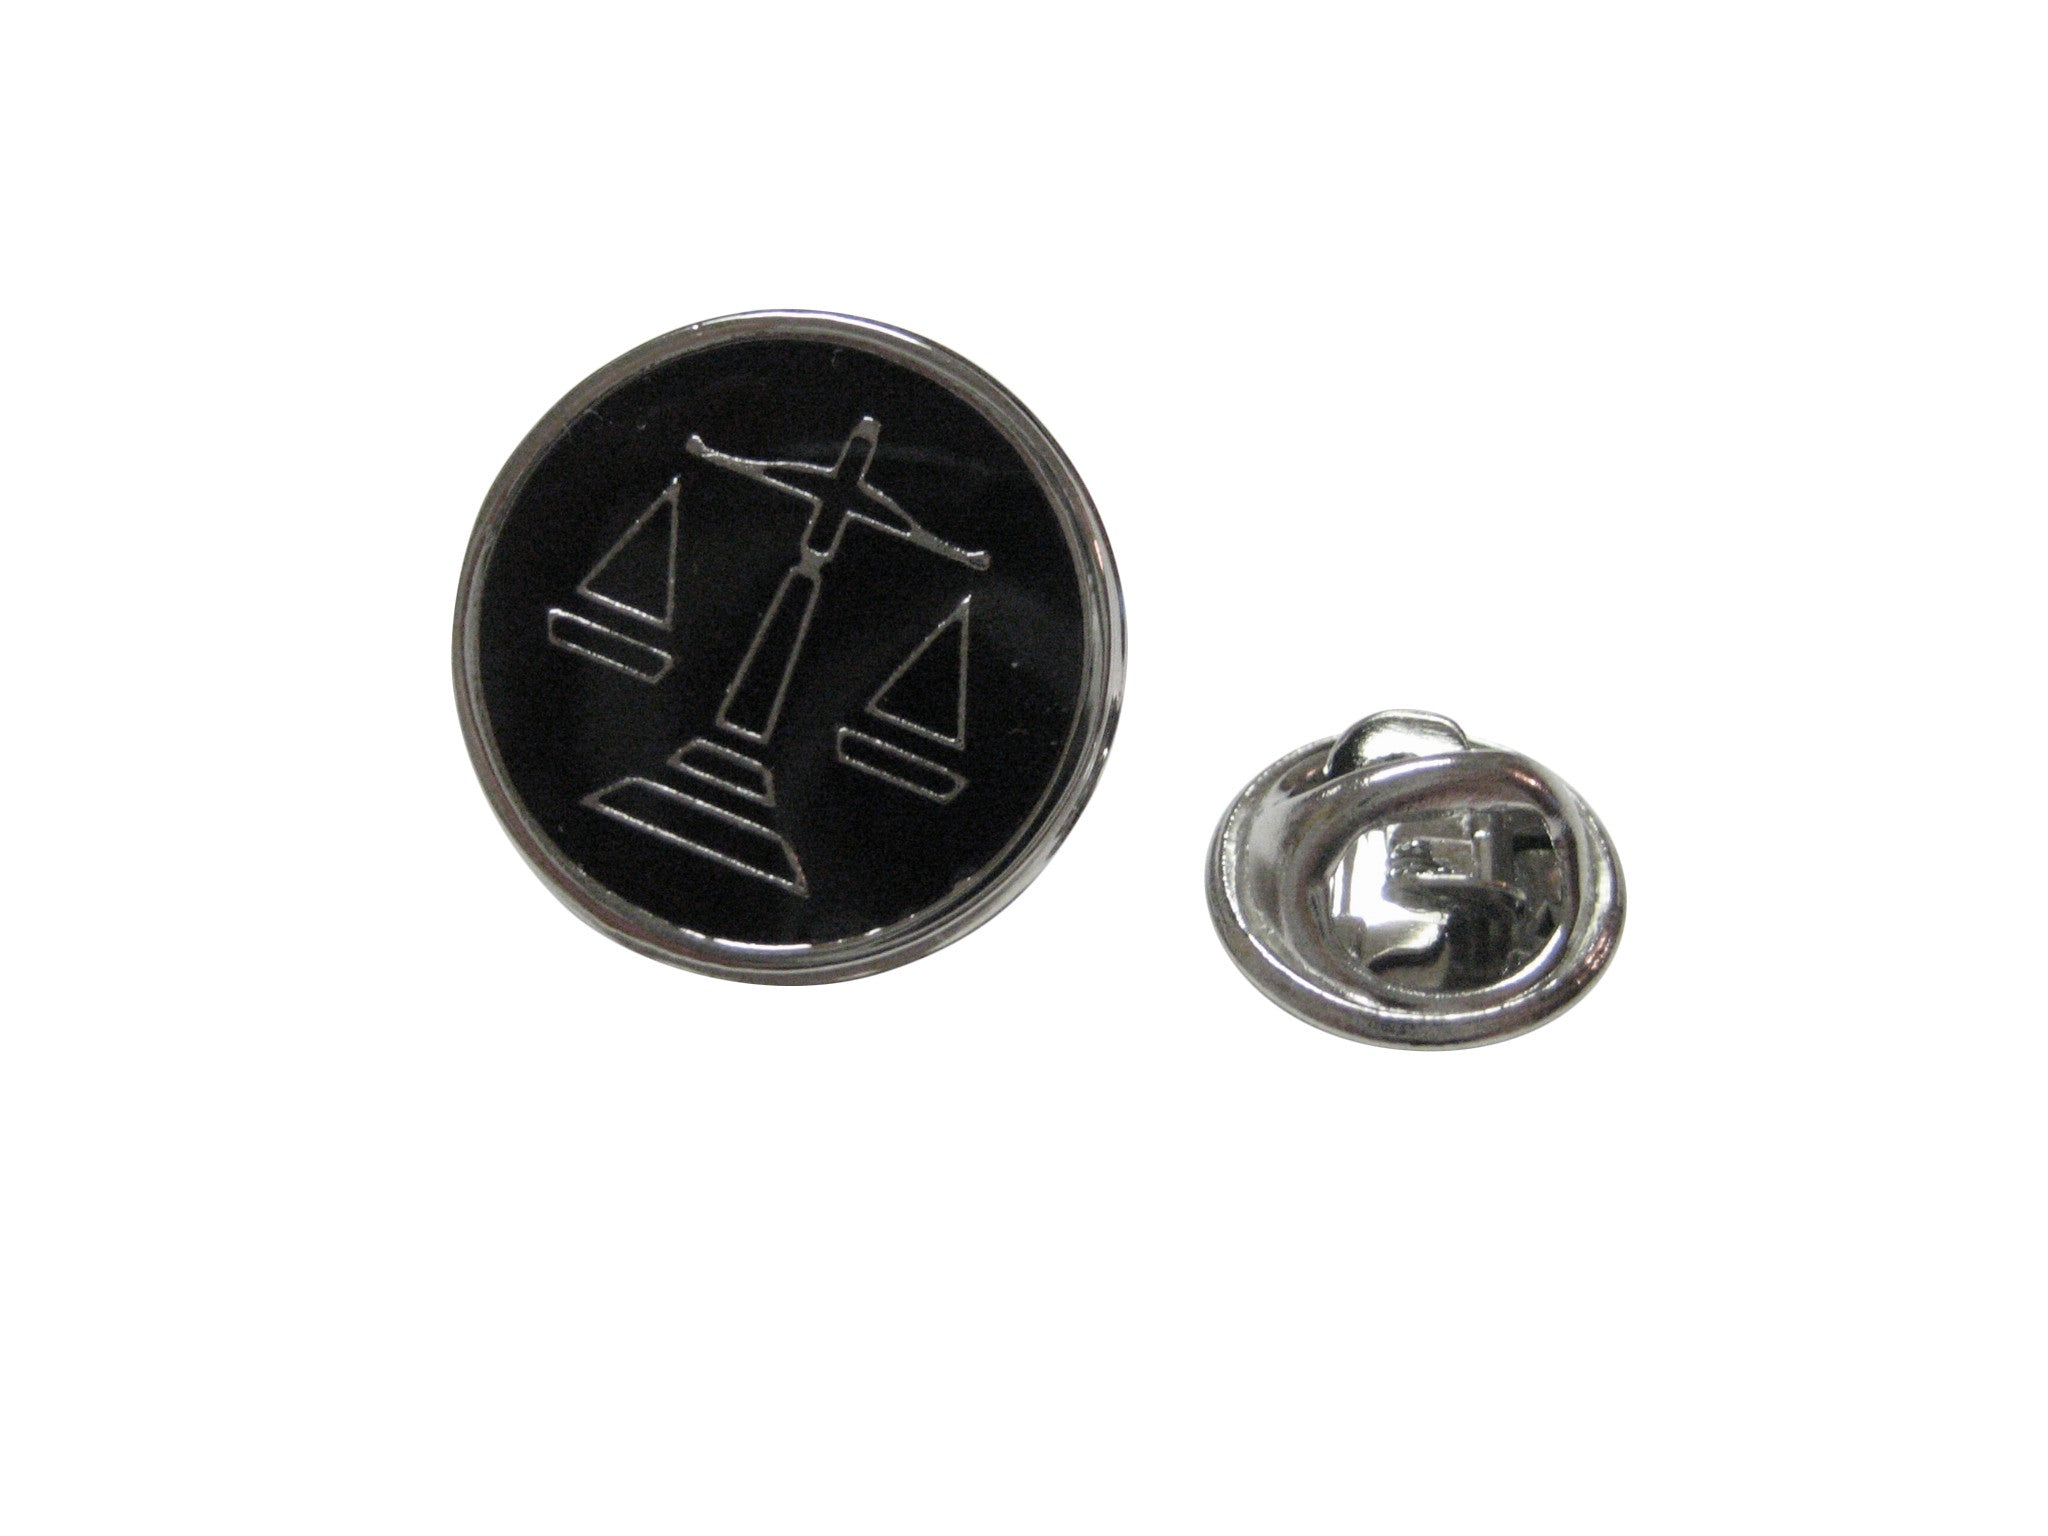 Black Scale of Justice Lapel Pin